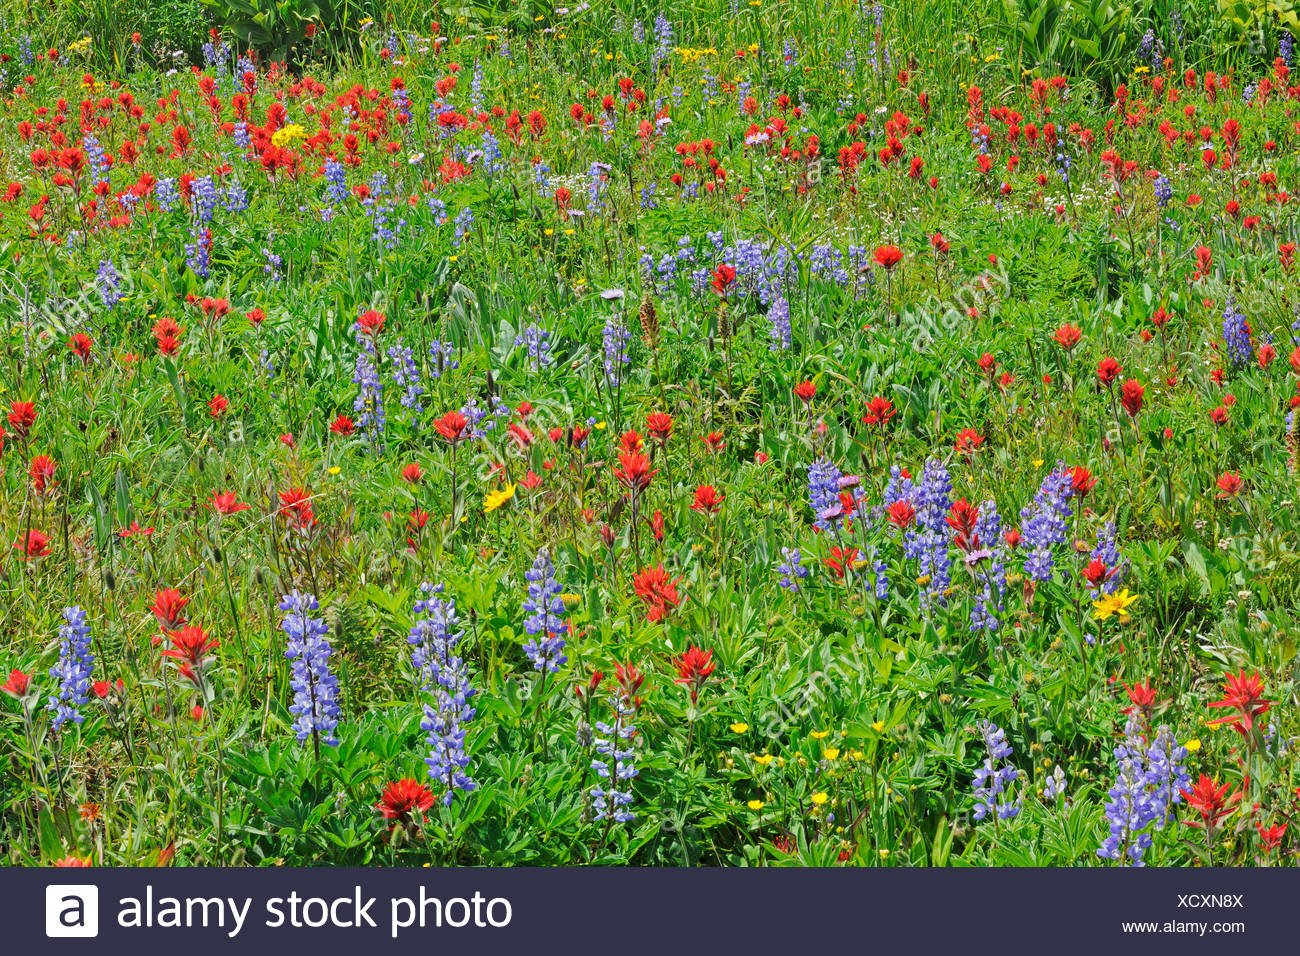 Wildflowers in the alpine zone at the summit of Sun Peaks (Lupines, paintbrush, composite), Near Kamloops, British Columbia, Canada - Stock Image